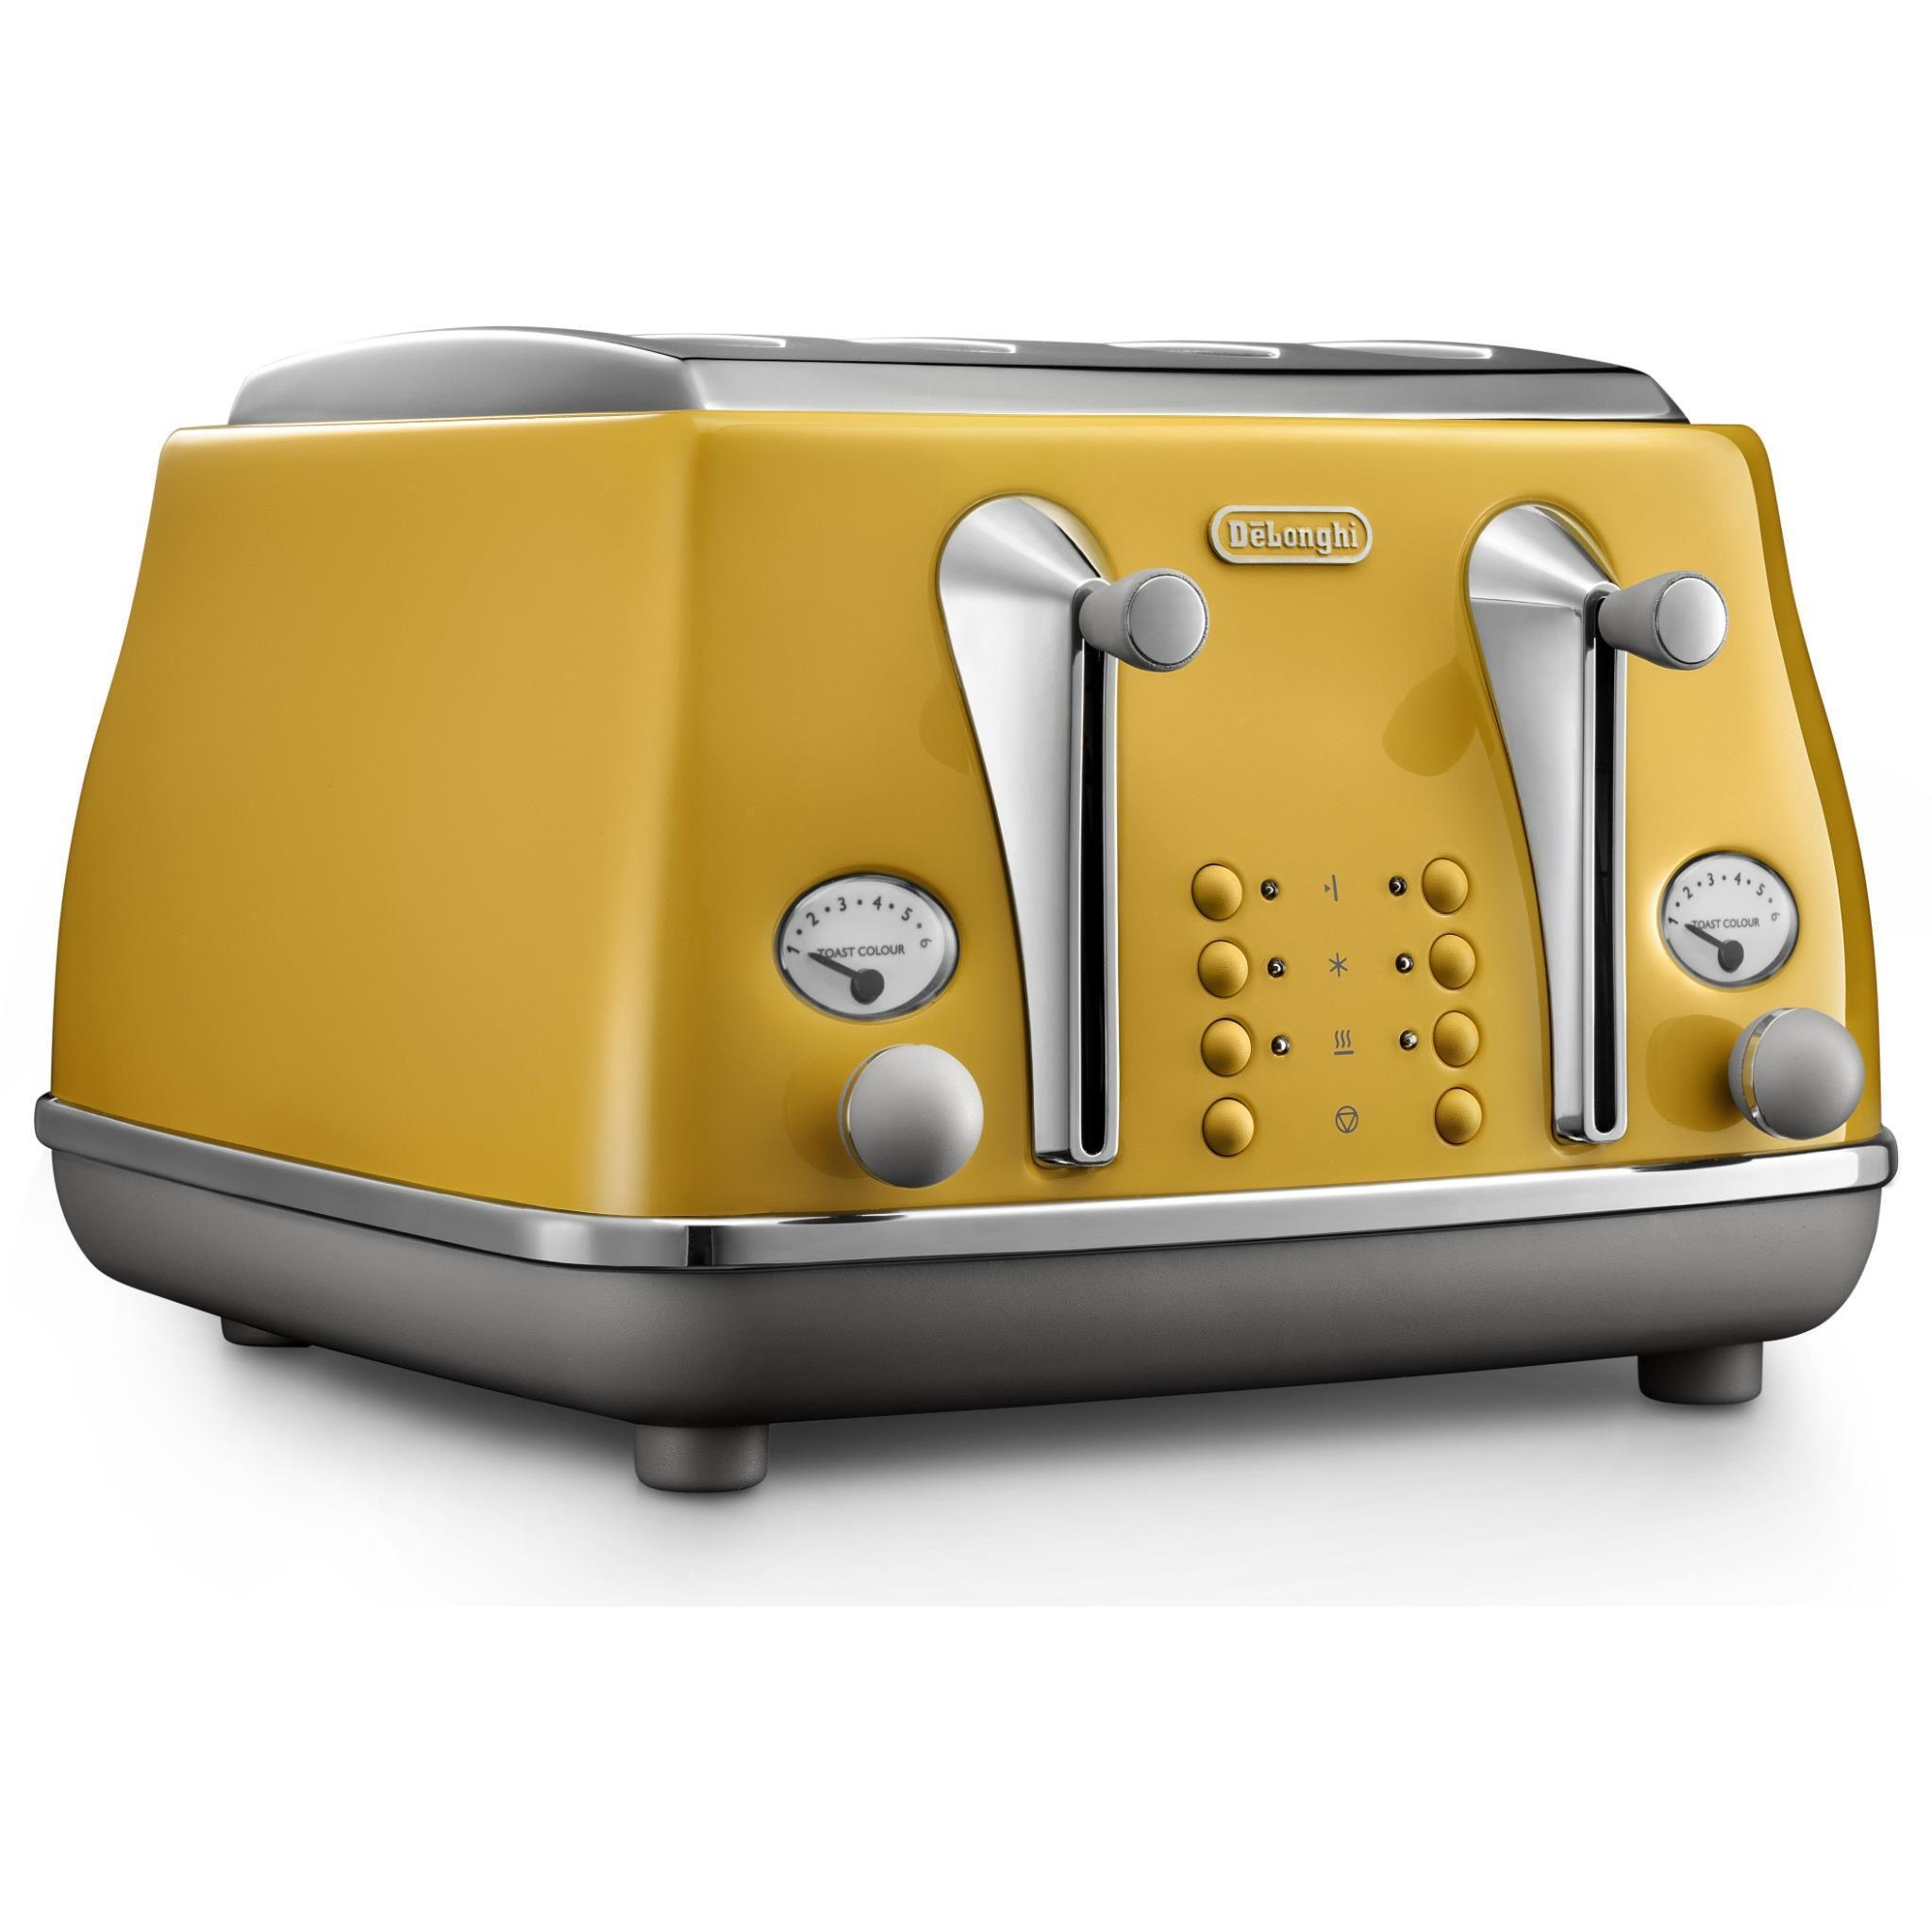 DeLonghi Icona Capitals 4 Slice Toaster (New York Yellow)